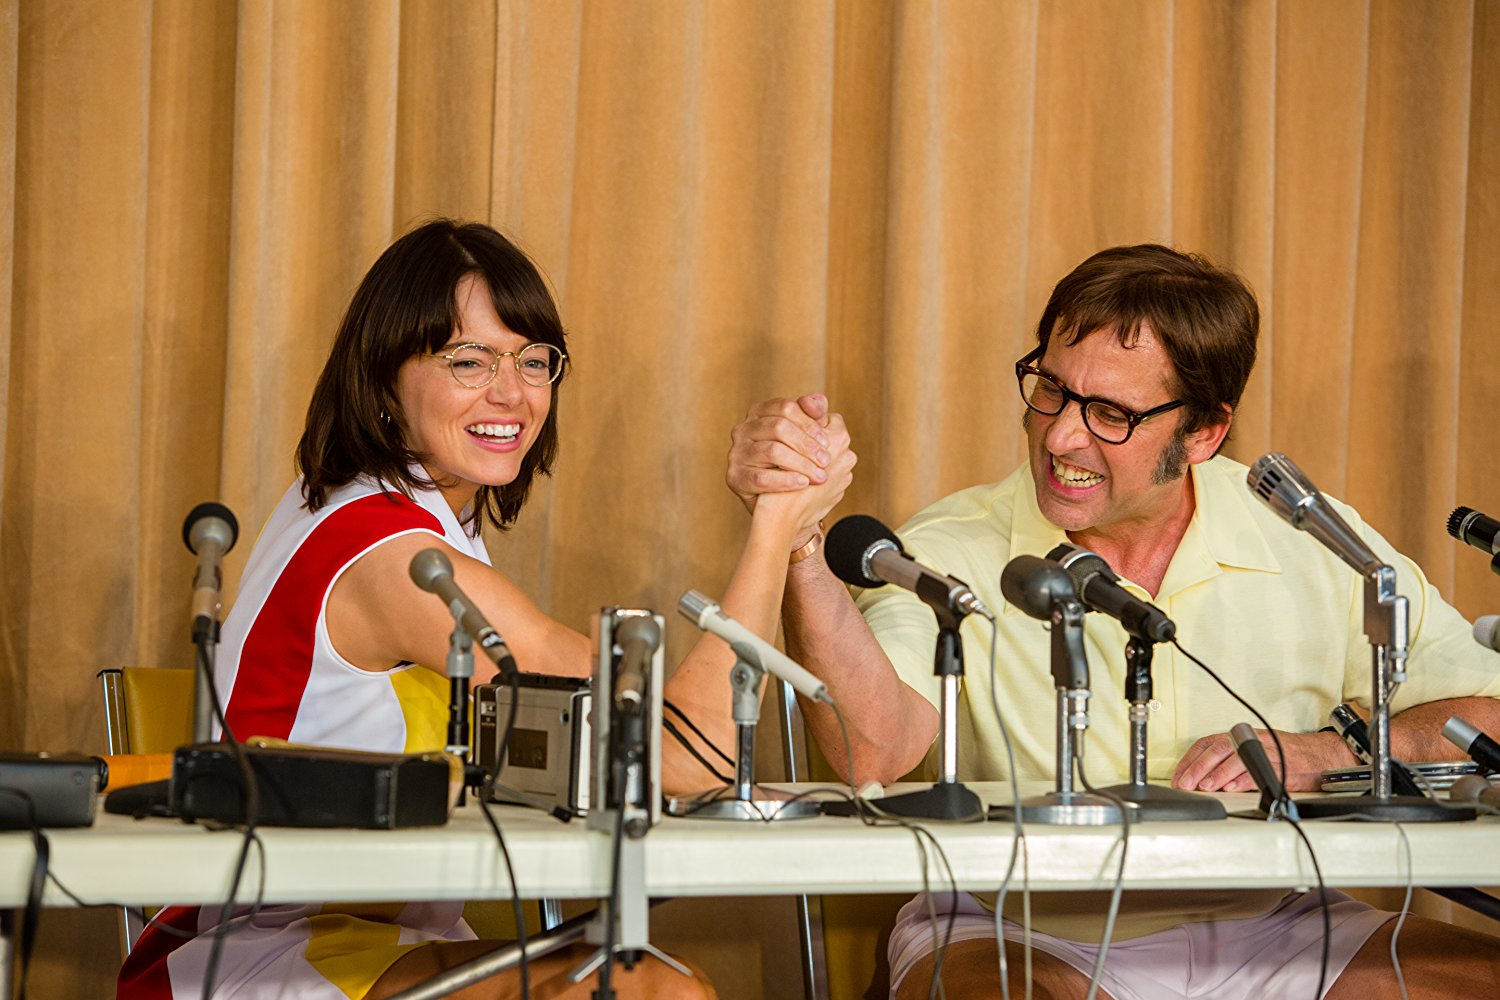 Battle of the Sexes – Marketing Recap